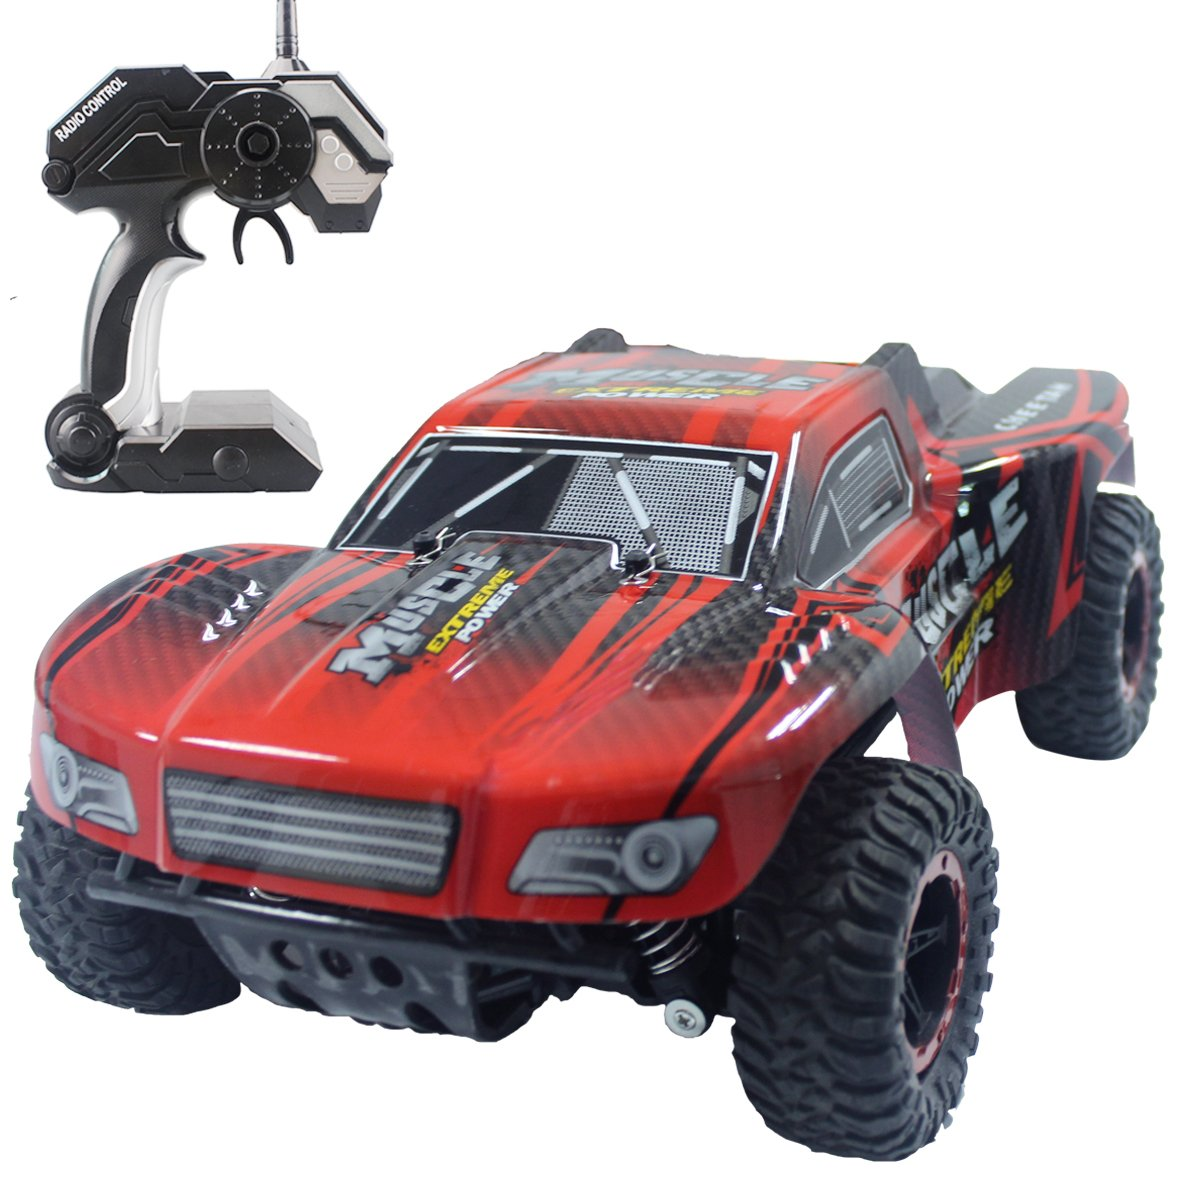 Hugine 116 20kmh high speed rc car off road vehicle 24g racing hugine 116 20kmh high speed rc car off road vehicle 24g racing cars rock crawler monster truck dune buggy extreme 4 wheel independent suspension radio publicscrutiny Images